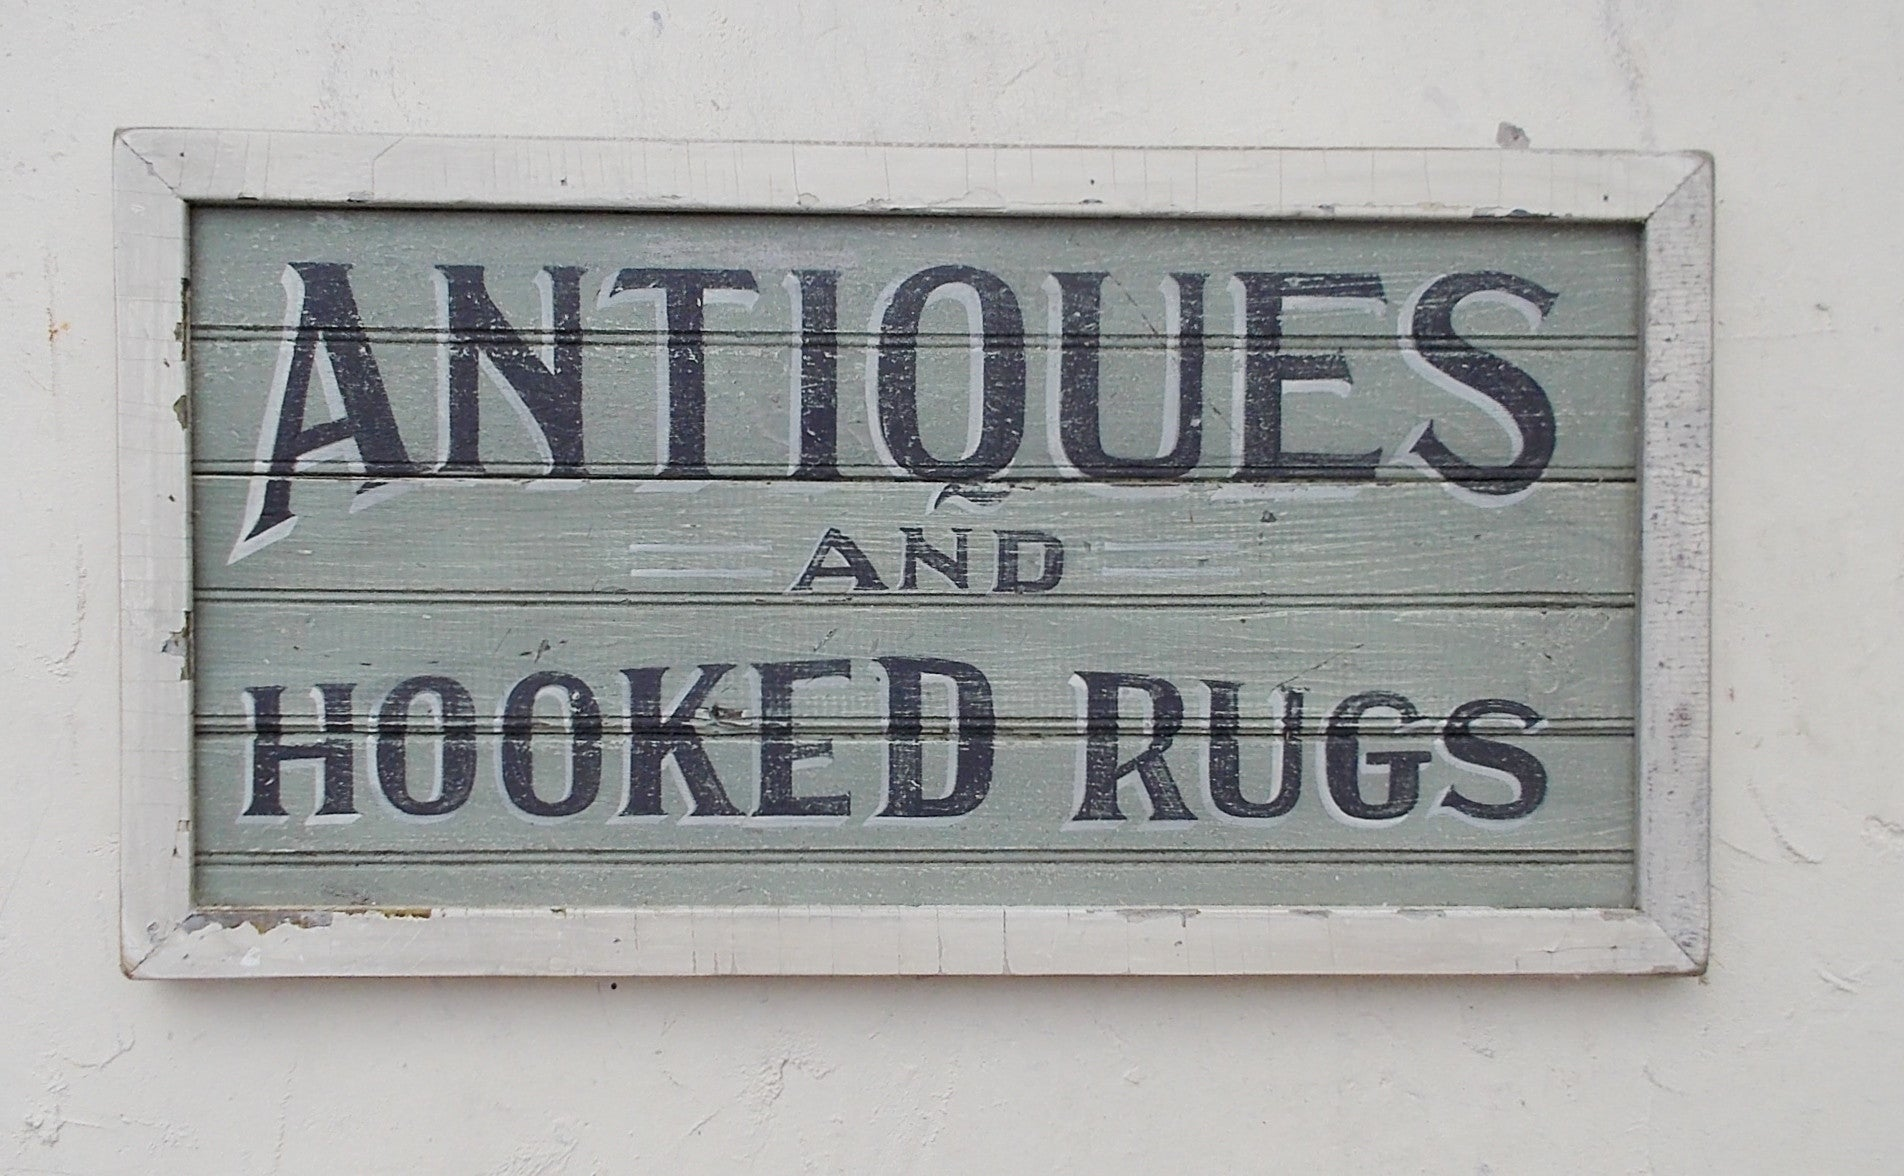 Antiques and Hooked Rugs